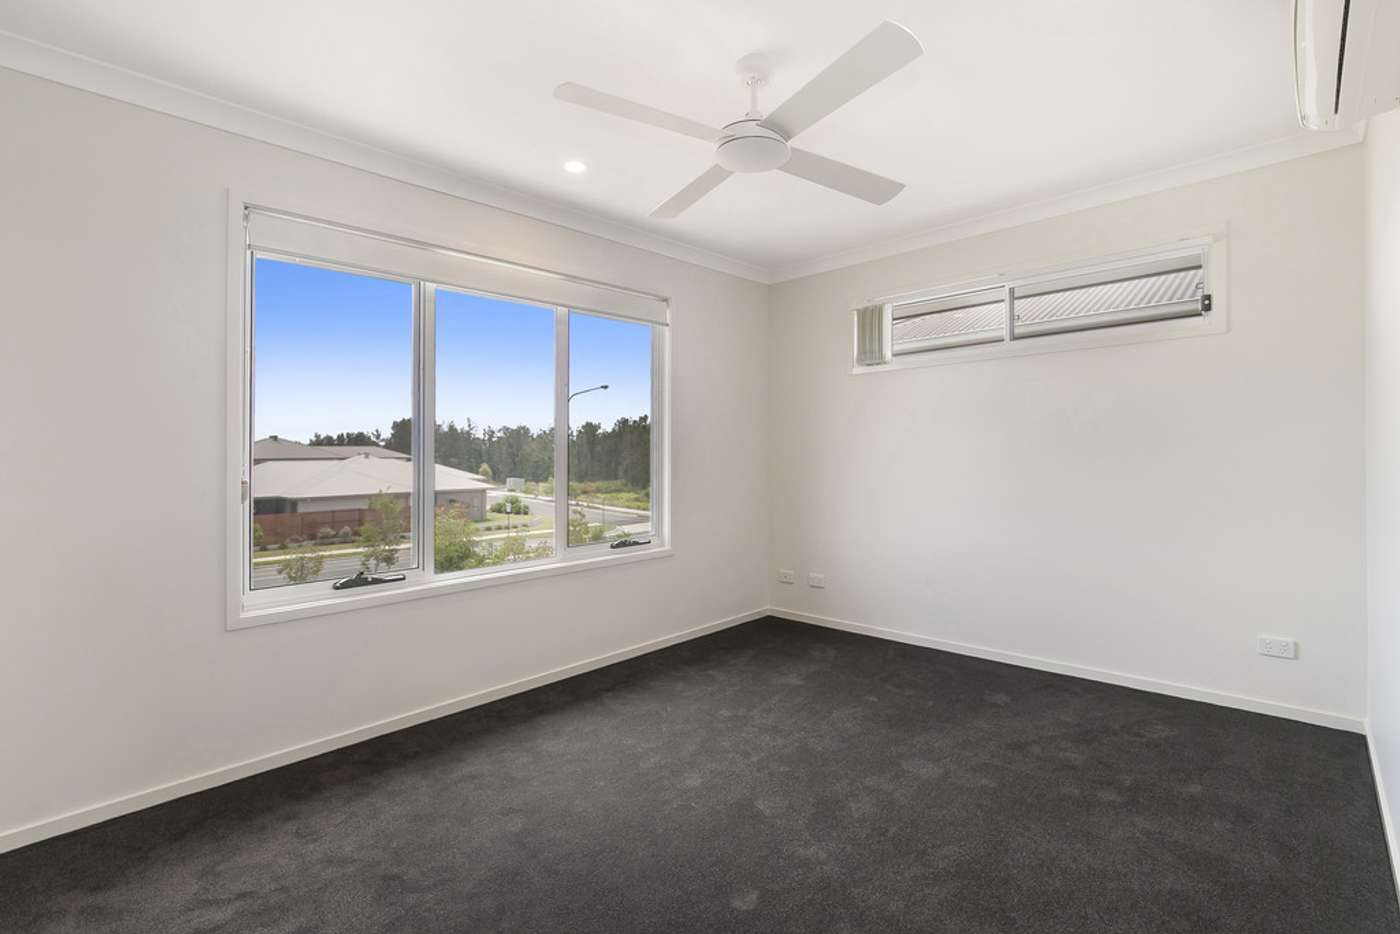 Sixth view of Homely townhouse listing, 91 370 GAINSBOROUGH DRIVE, Pimpama QLD 4209